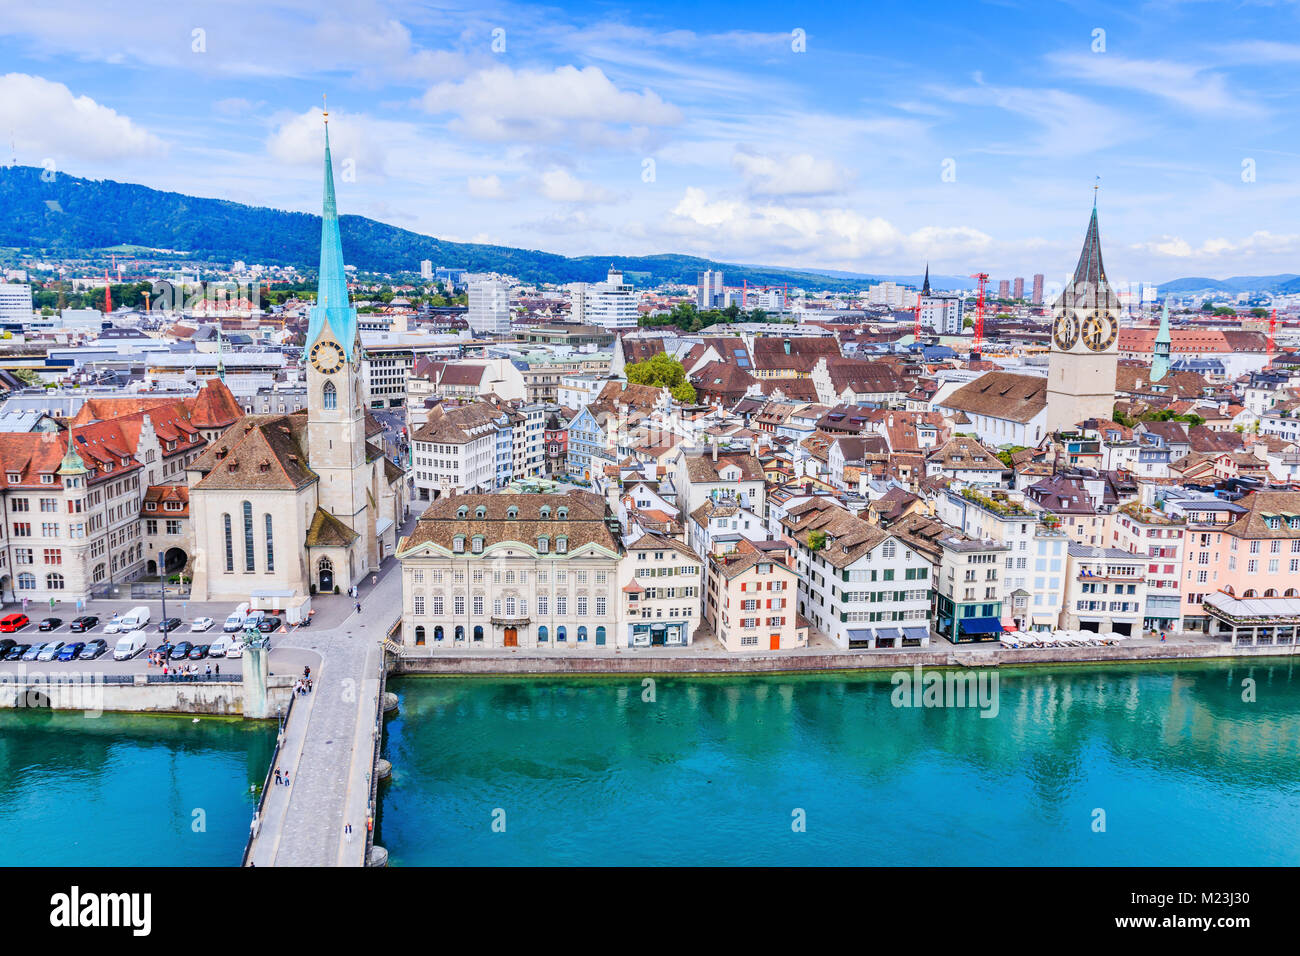 Zurich, Switzerland. View of historic Zurich city center with famous Fraumunster Church, Limmat river and Zurich - Stock Image